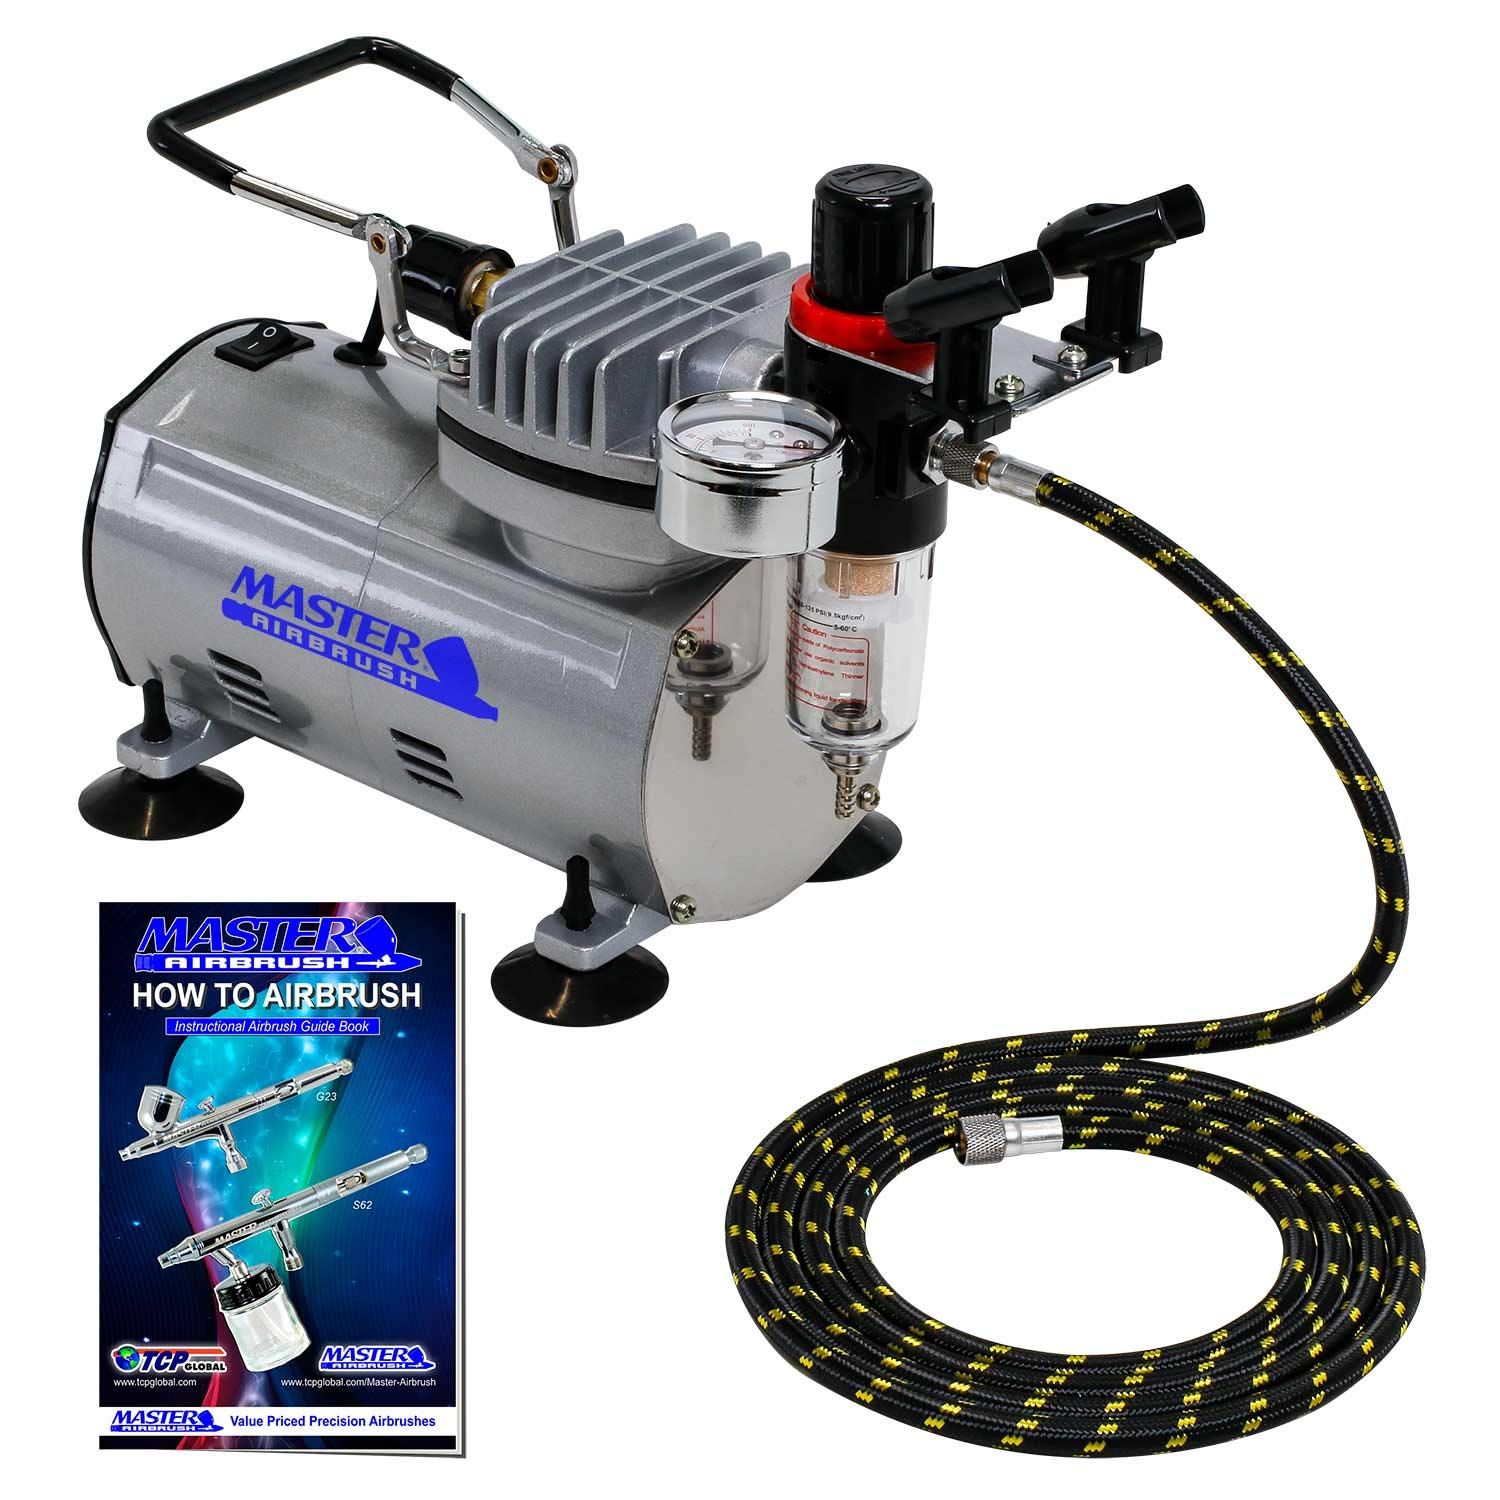 Master Airbrush Compressor with Water Trap and Regulator, Now Includes a (FREE) 6 Foot Airbrush Hose and a (FREE) How to Airbrush Training Book to Get You Started